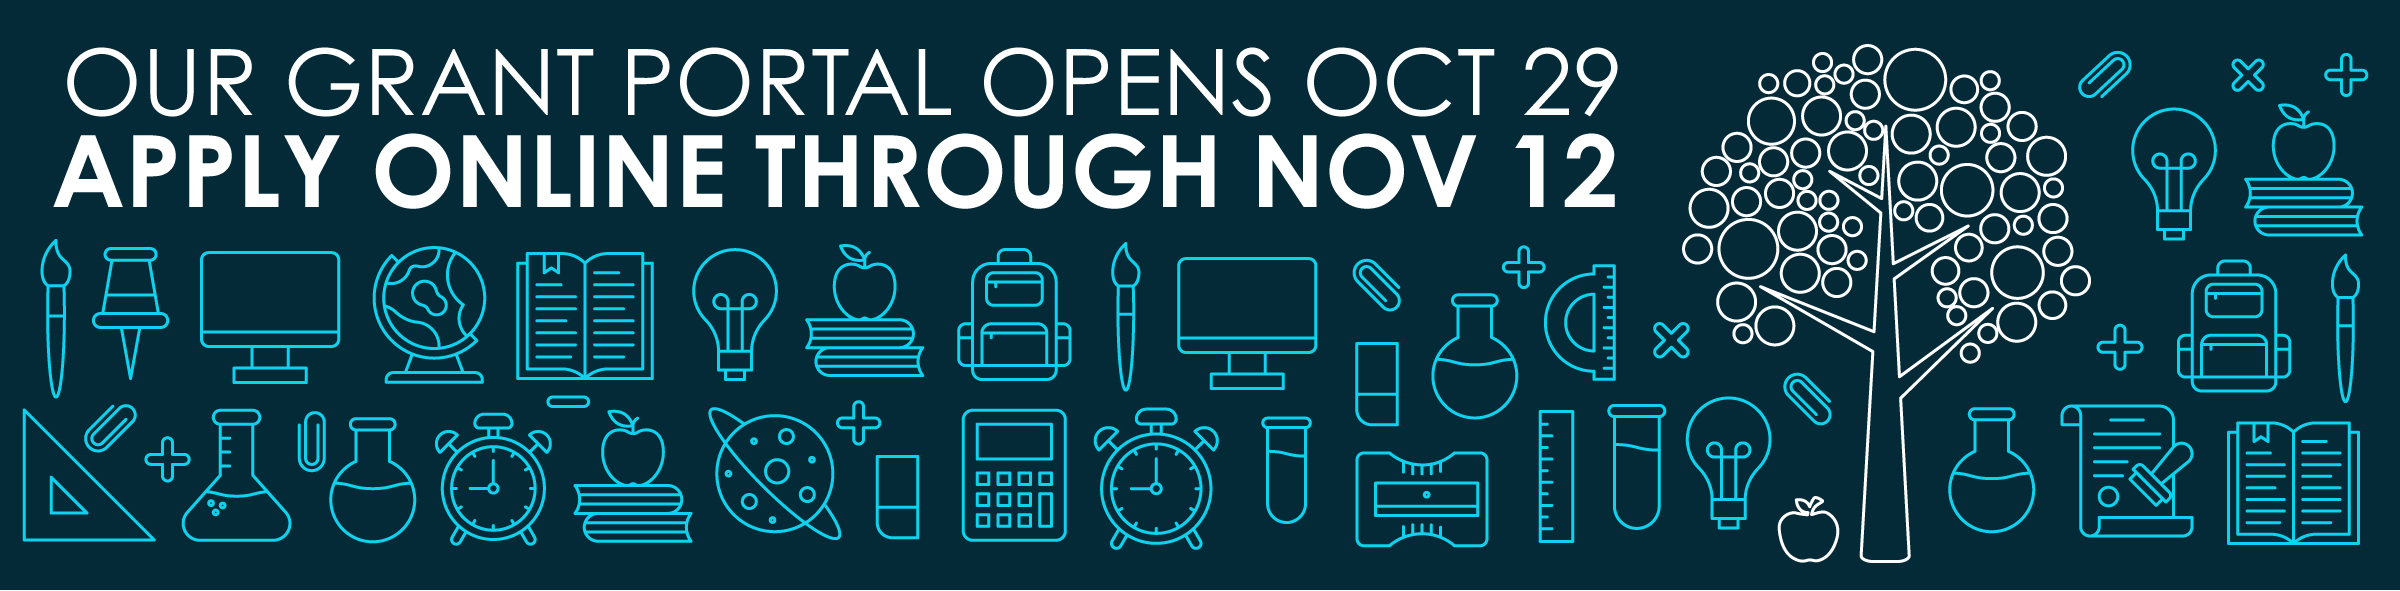 Our Grant Application portal opens October 29. Stay tuned for more details.></h3> </div></div></div><div id=